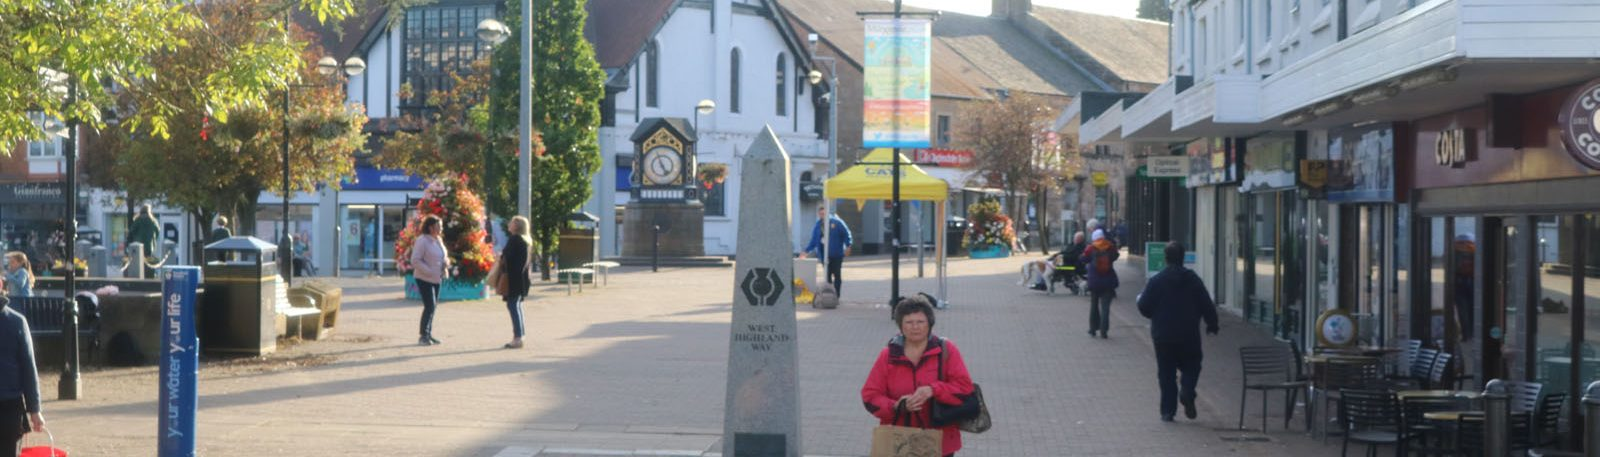 Milngavie Precinct October 2019, where Milngavie life happens